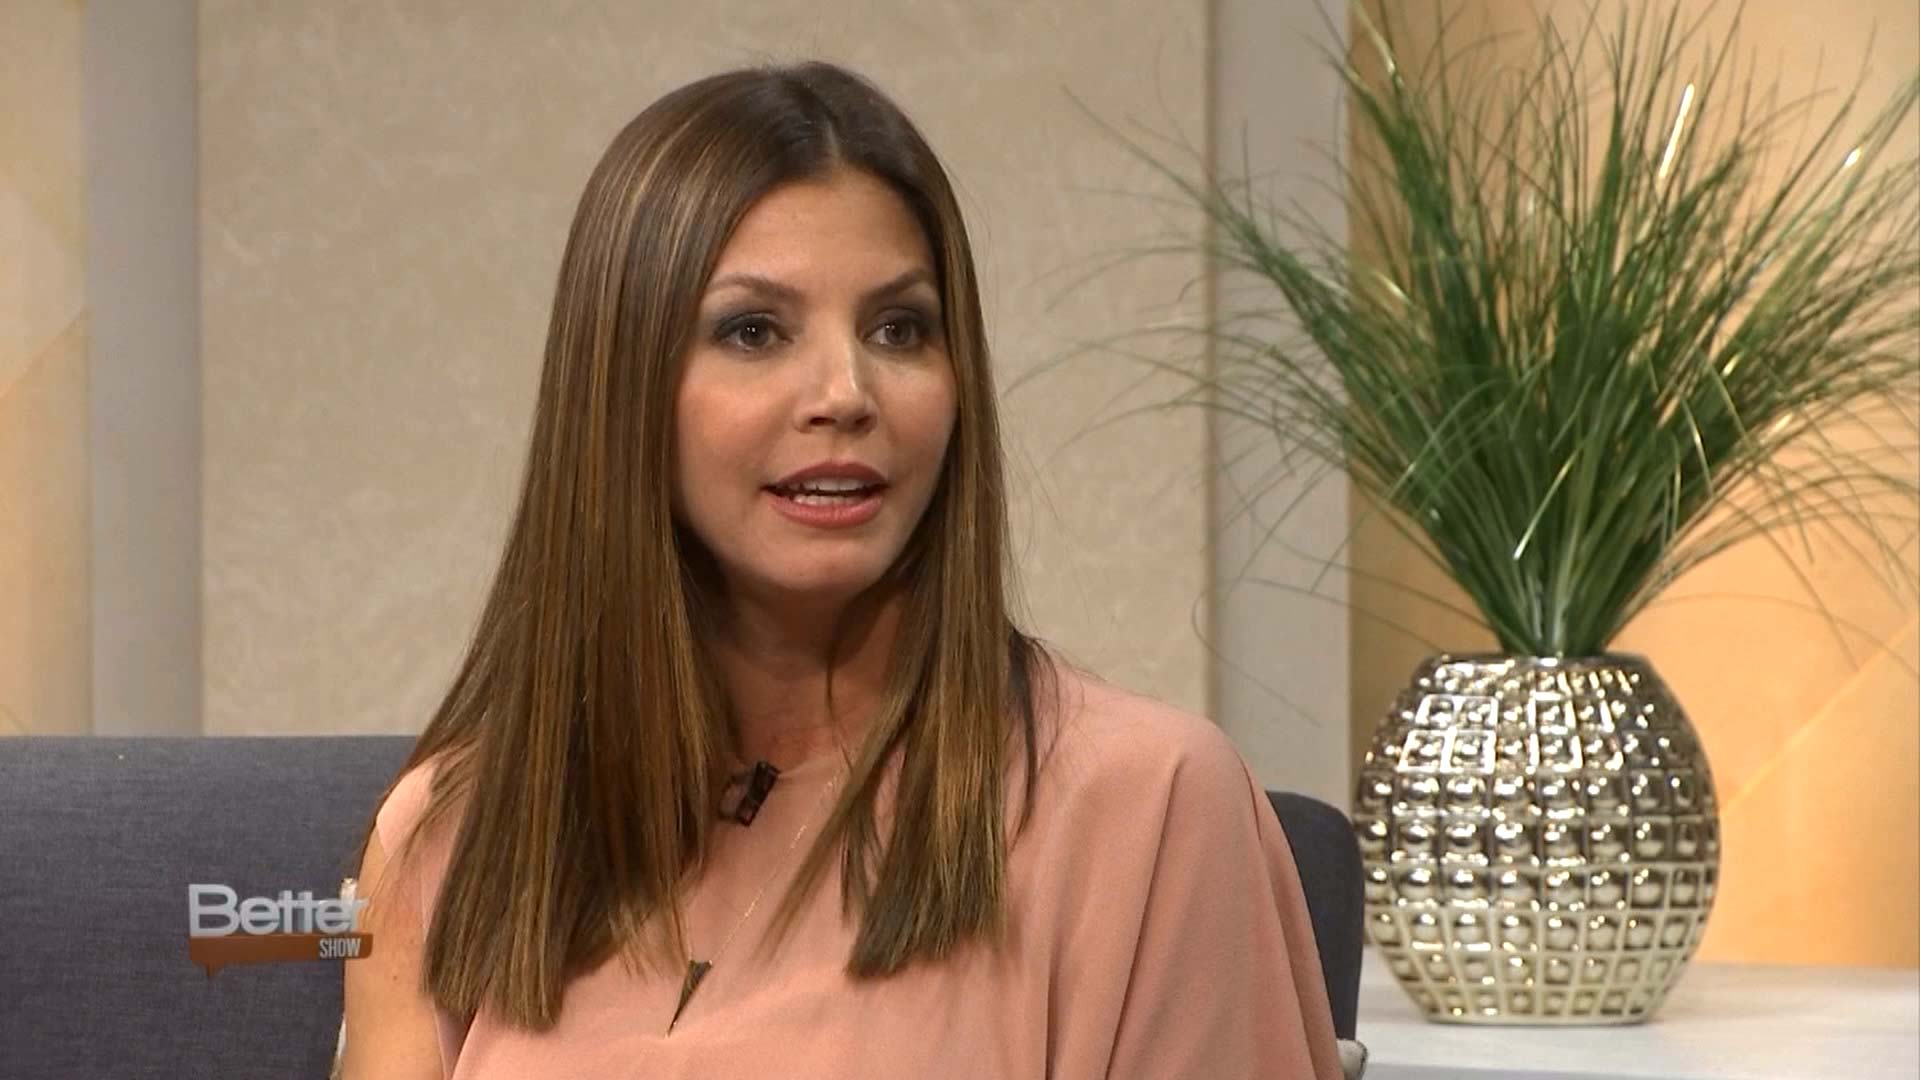 Charisma Carpenter on How One Survives Evil